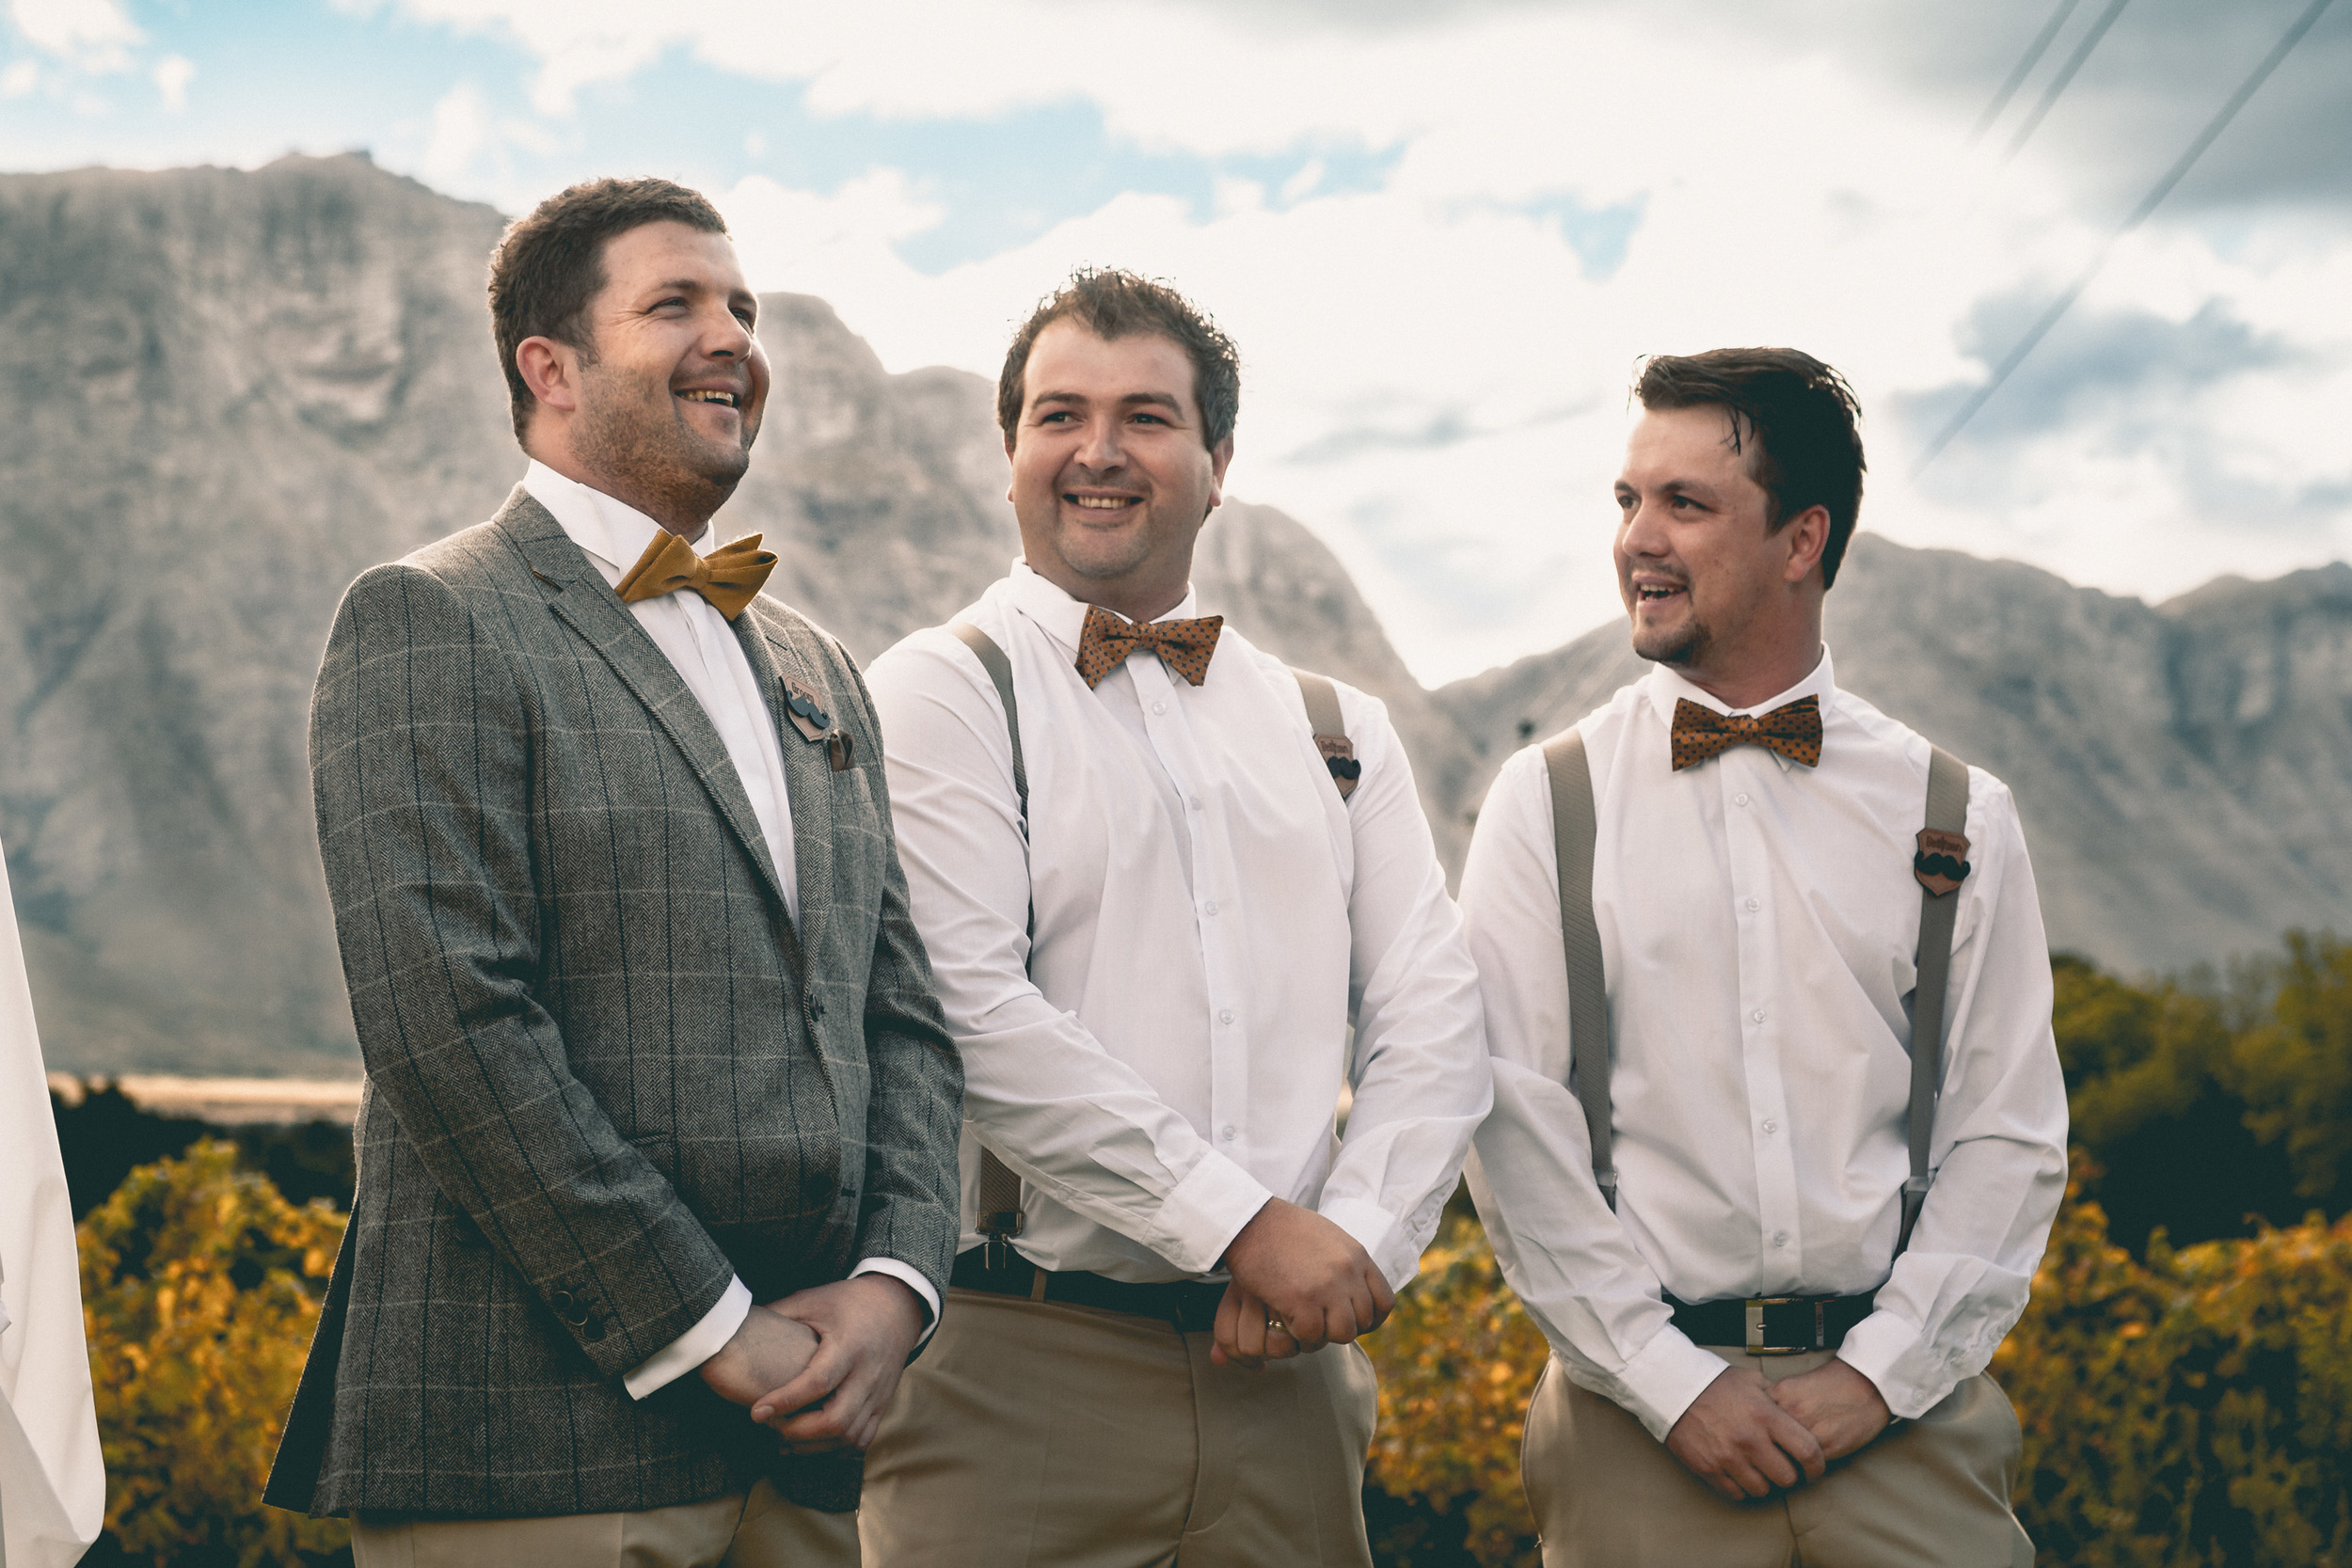 The Groom and his groomsmen wait for the bride at a beautiful autumn wedding in the countryside outside Cape Town, South Africa